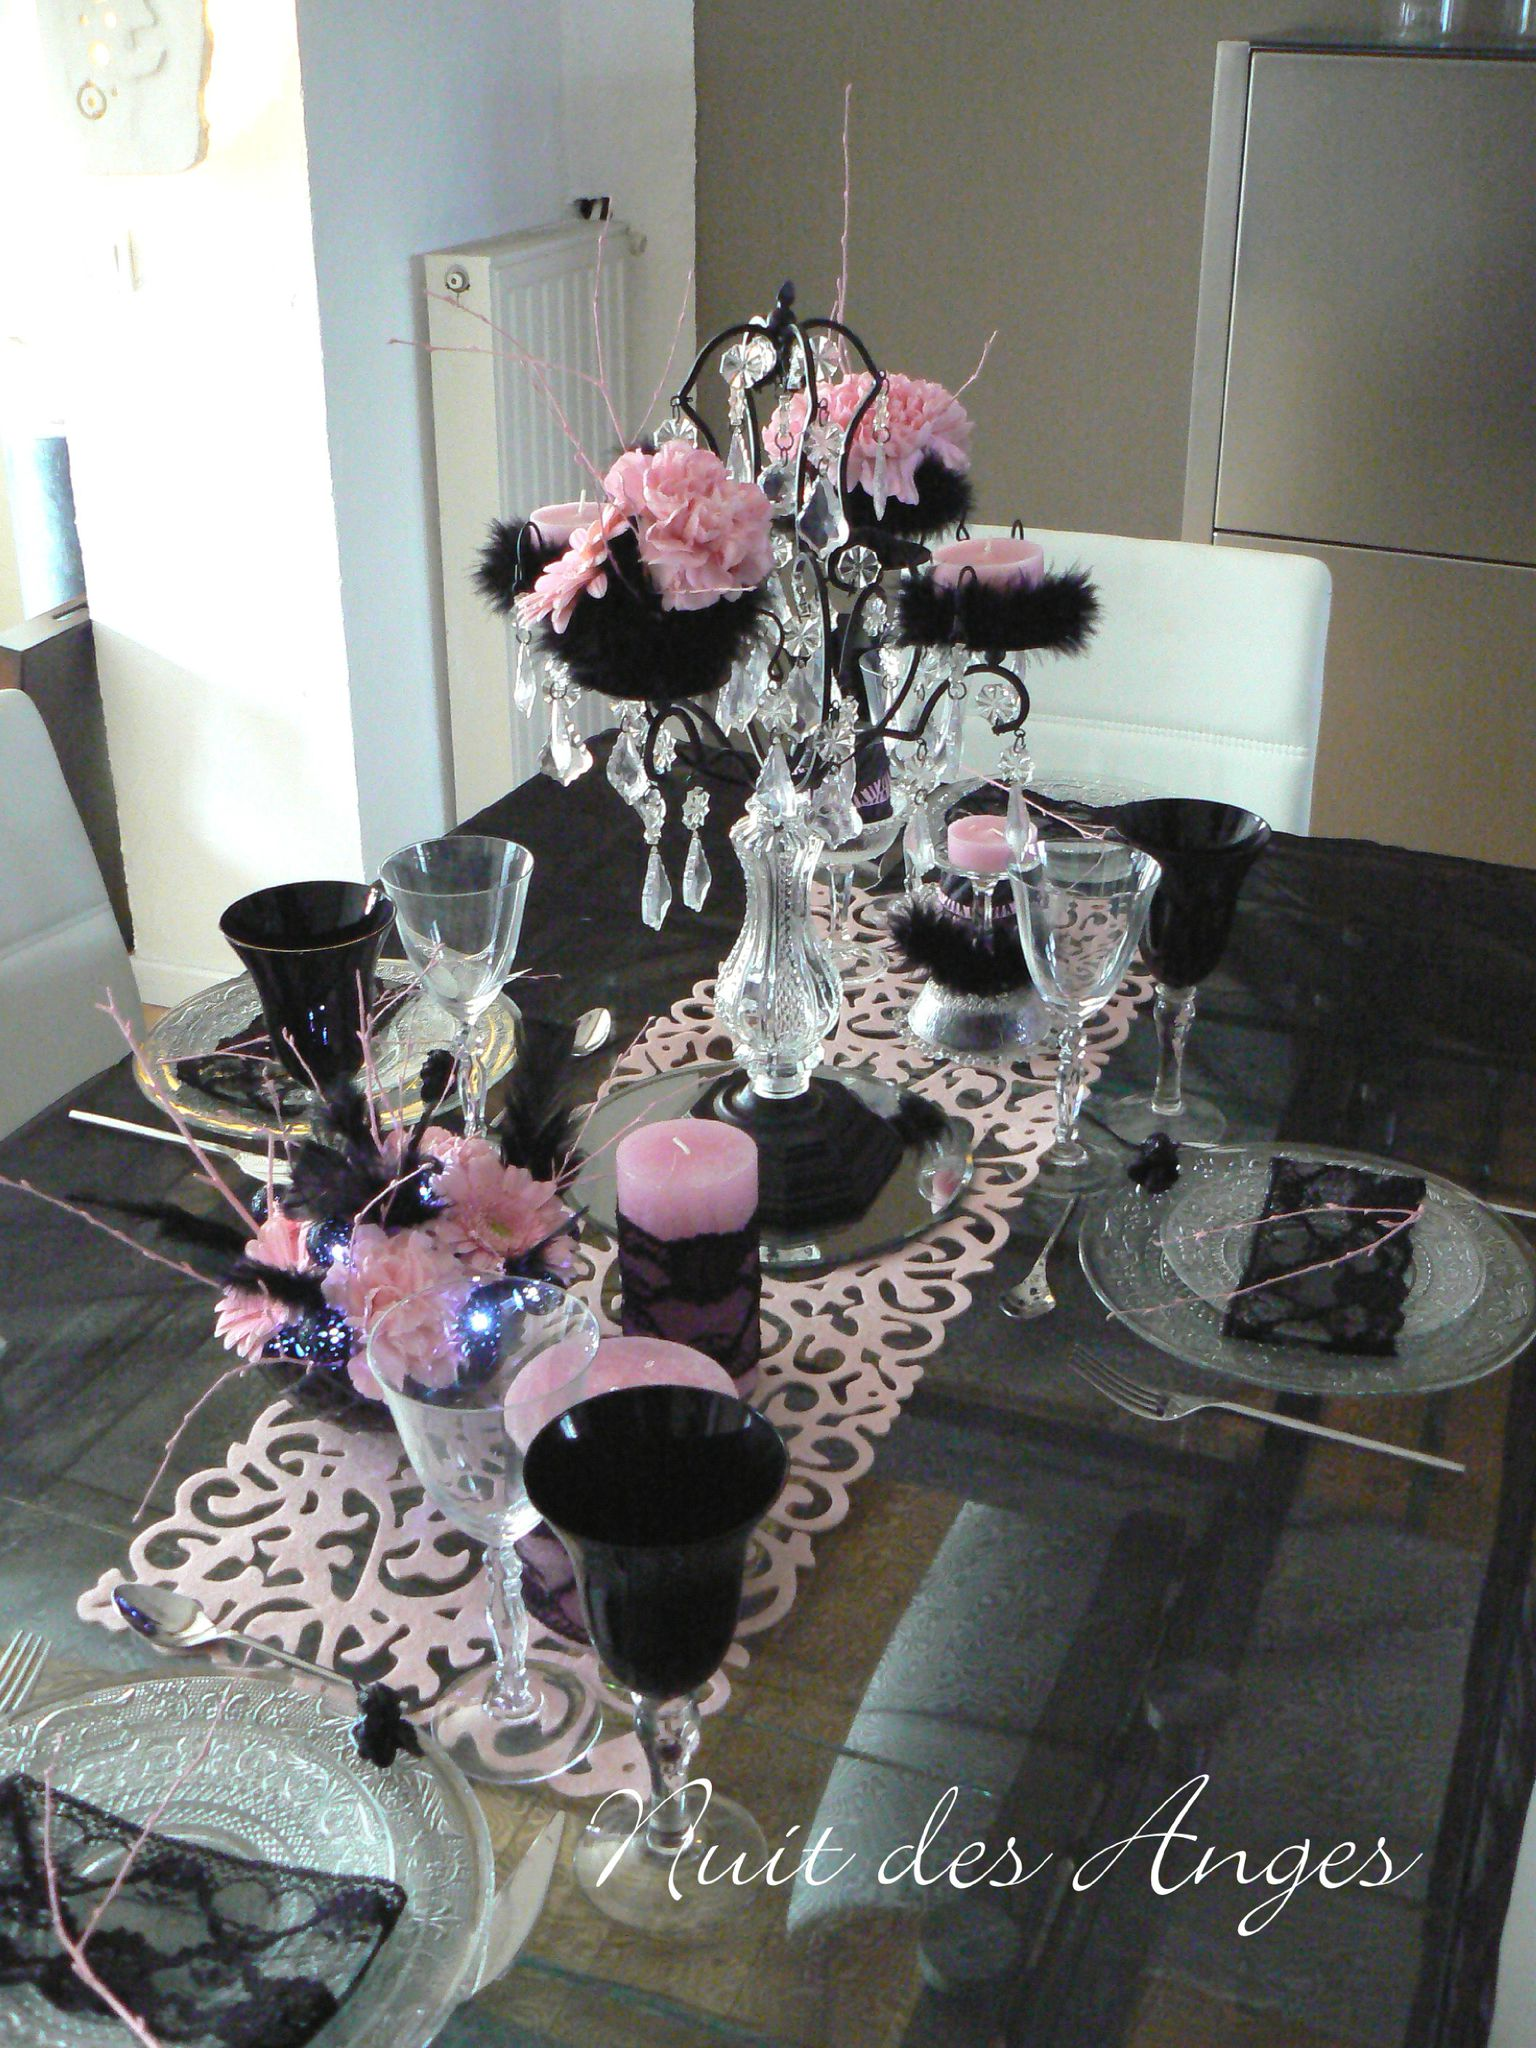 d coration de table noir et rose boudoir nuit des anges. Black Bedroom Furniture Sets. Home Design Ideas